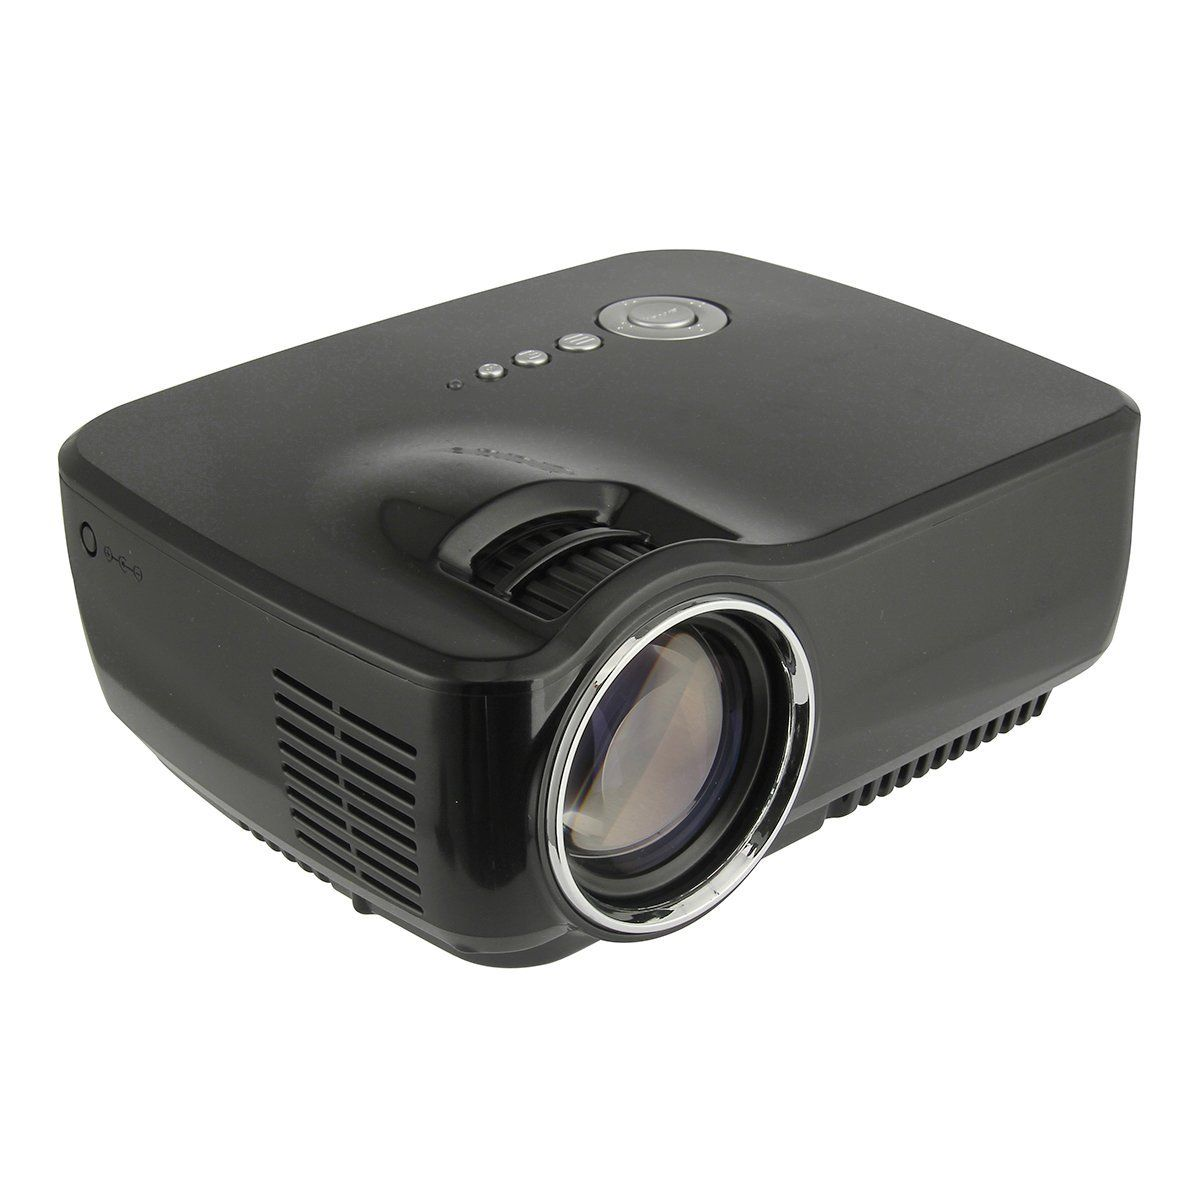 New 1800lumen hd led projector multimedia home cinema for Hd projector